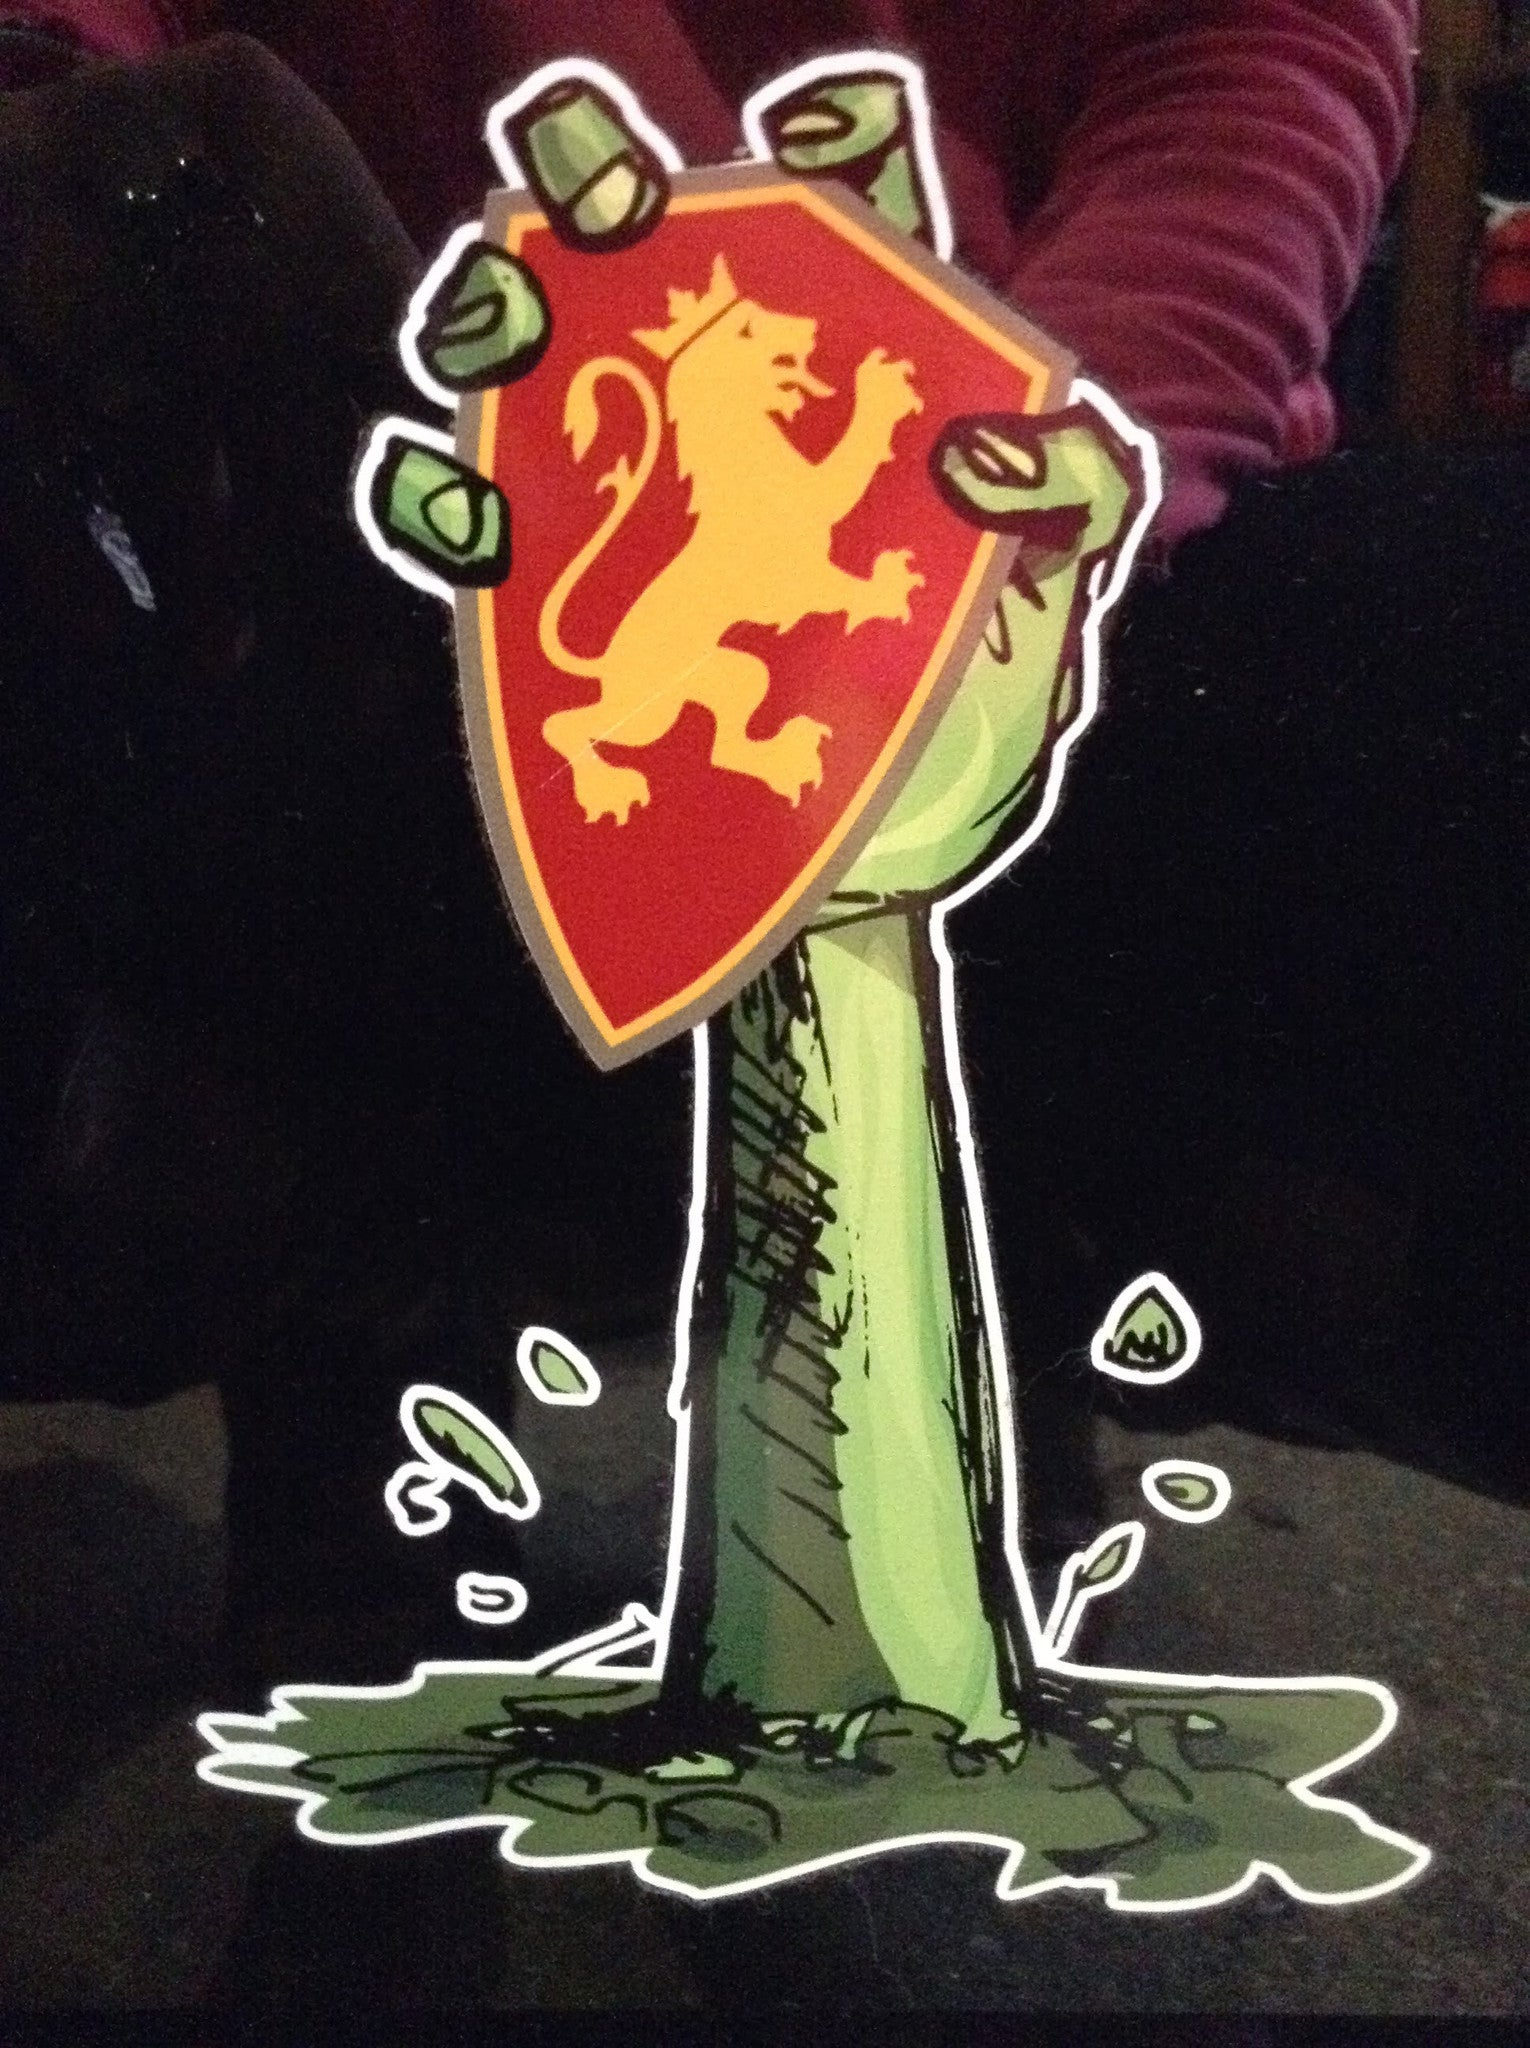 stick of green zombie hand grabbing gold and red lion shield